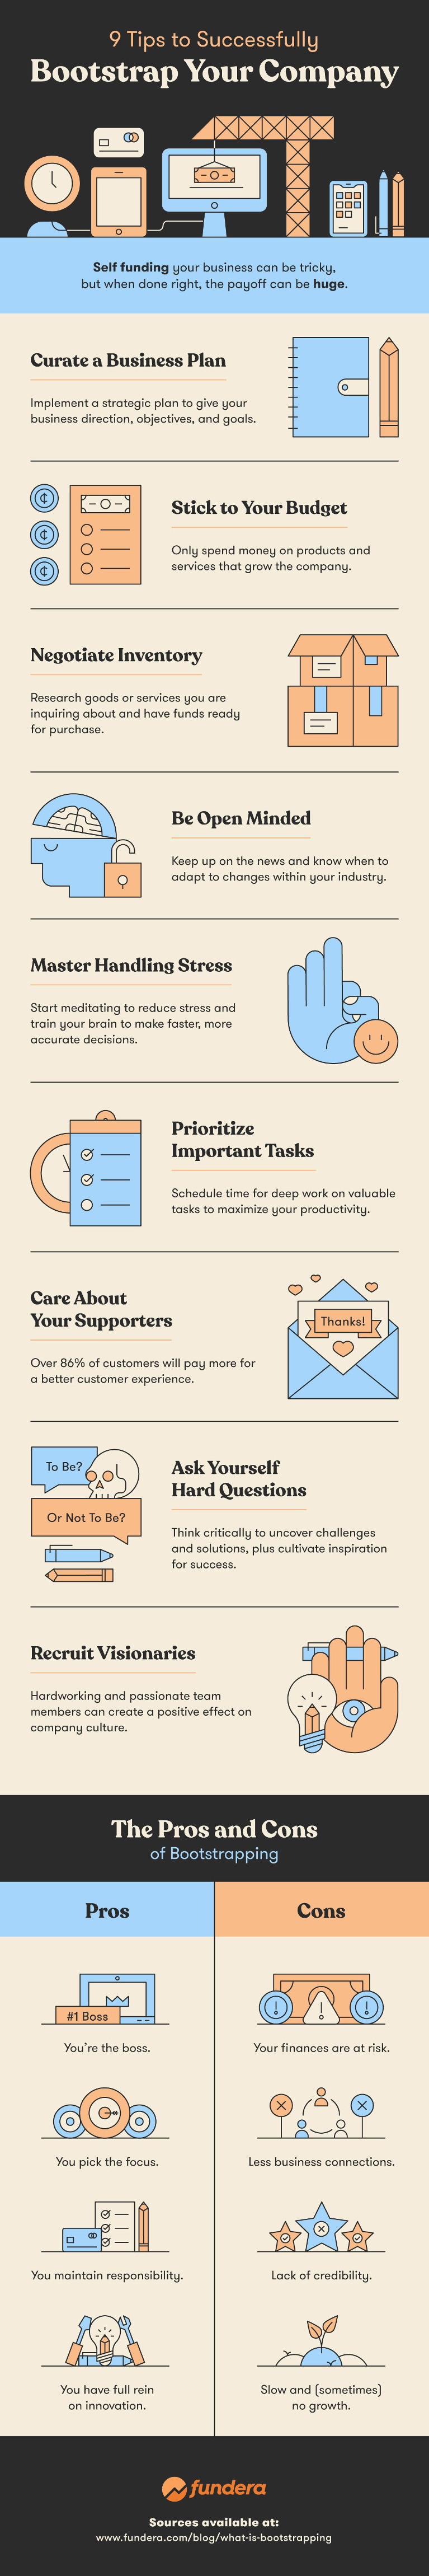 Boostrapping infographic by Fundera